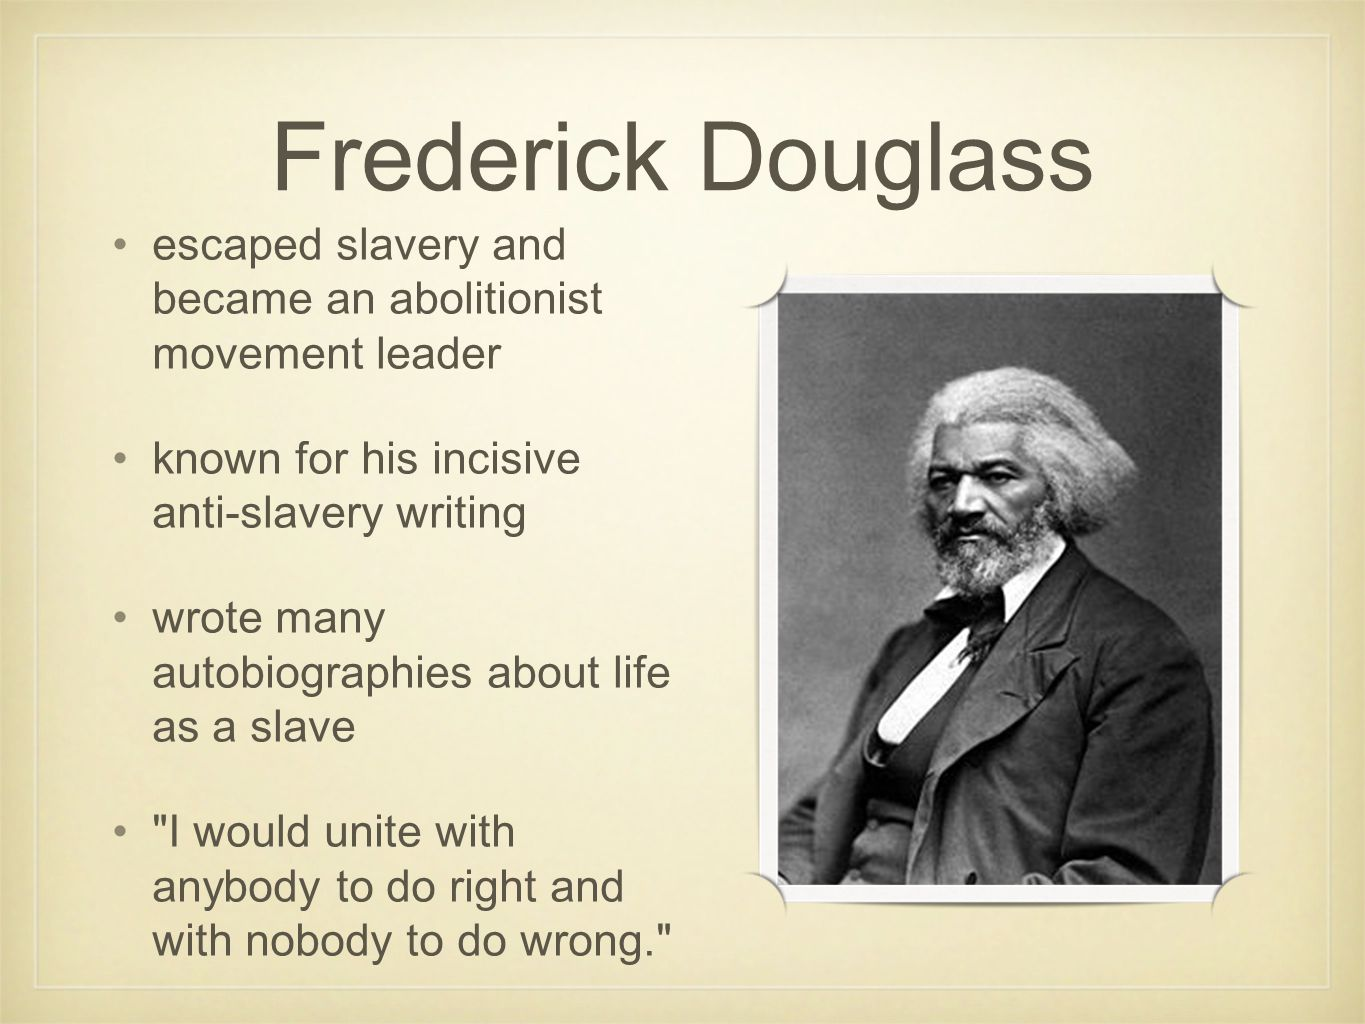 Frederick Douglass escaped slavery and became an abolitionist movement leader known for his incisive anti-slavery writing wrote many autobiographies about life as a slave I would unite with anybody to do right and with nobody to do wrong.